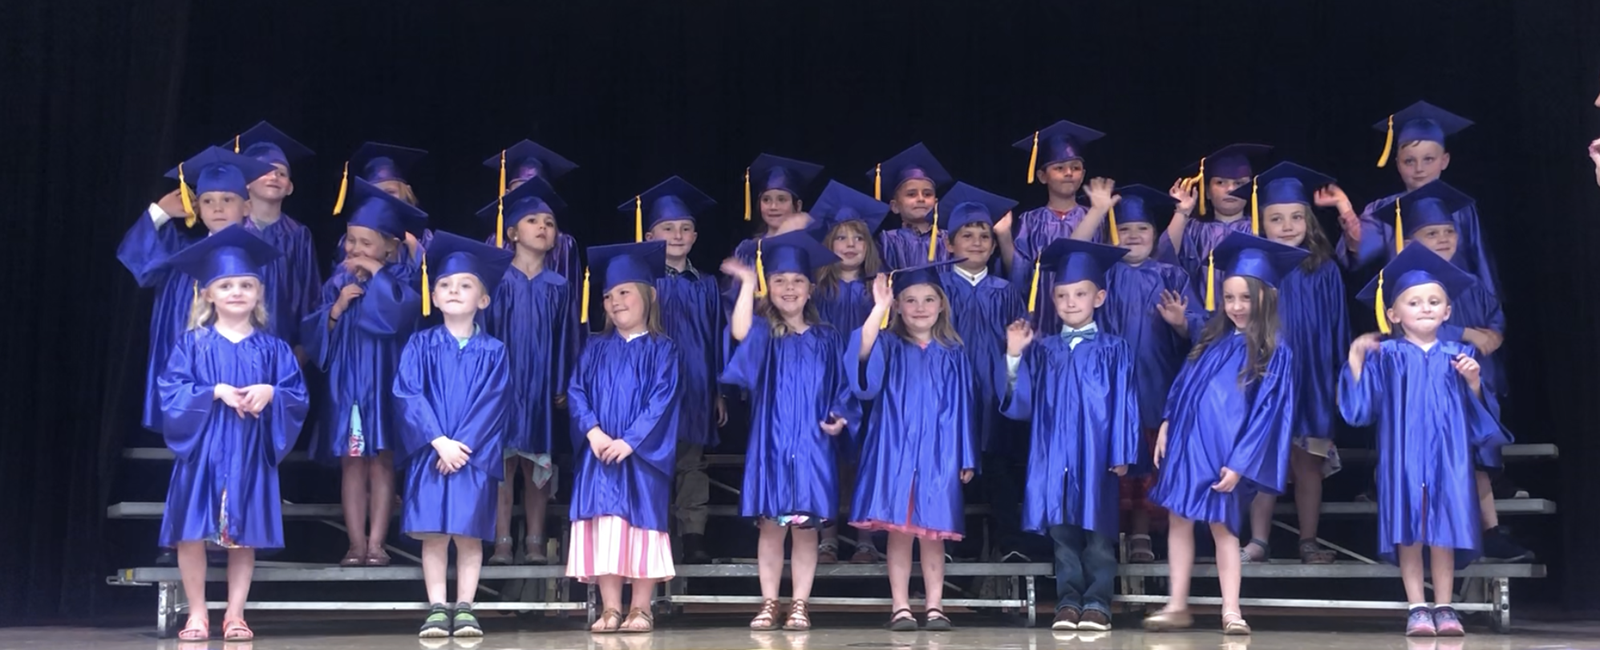 B.L. Miller Elementary School's kindergarten class celebrated graduation on Wednesday, May 22, 2019.